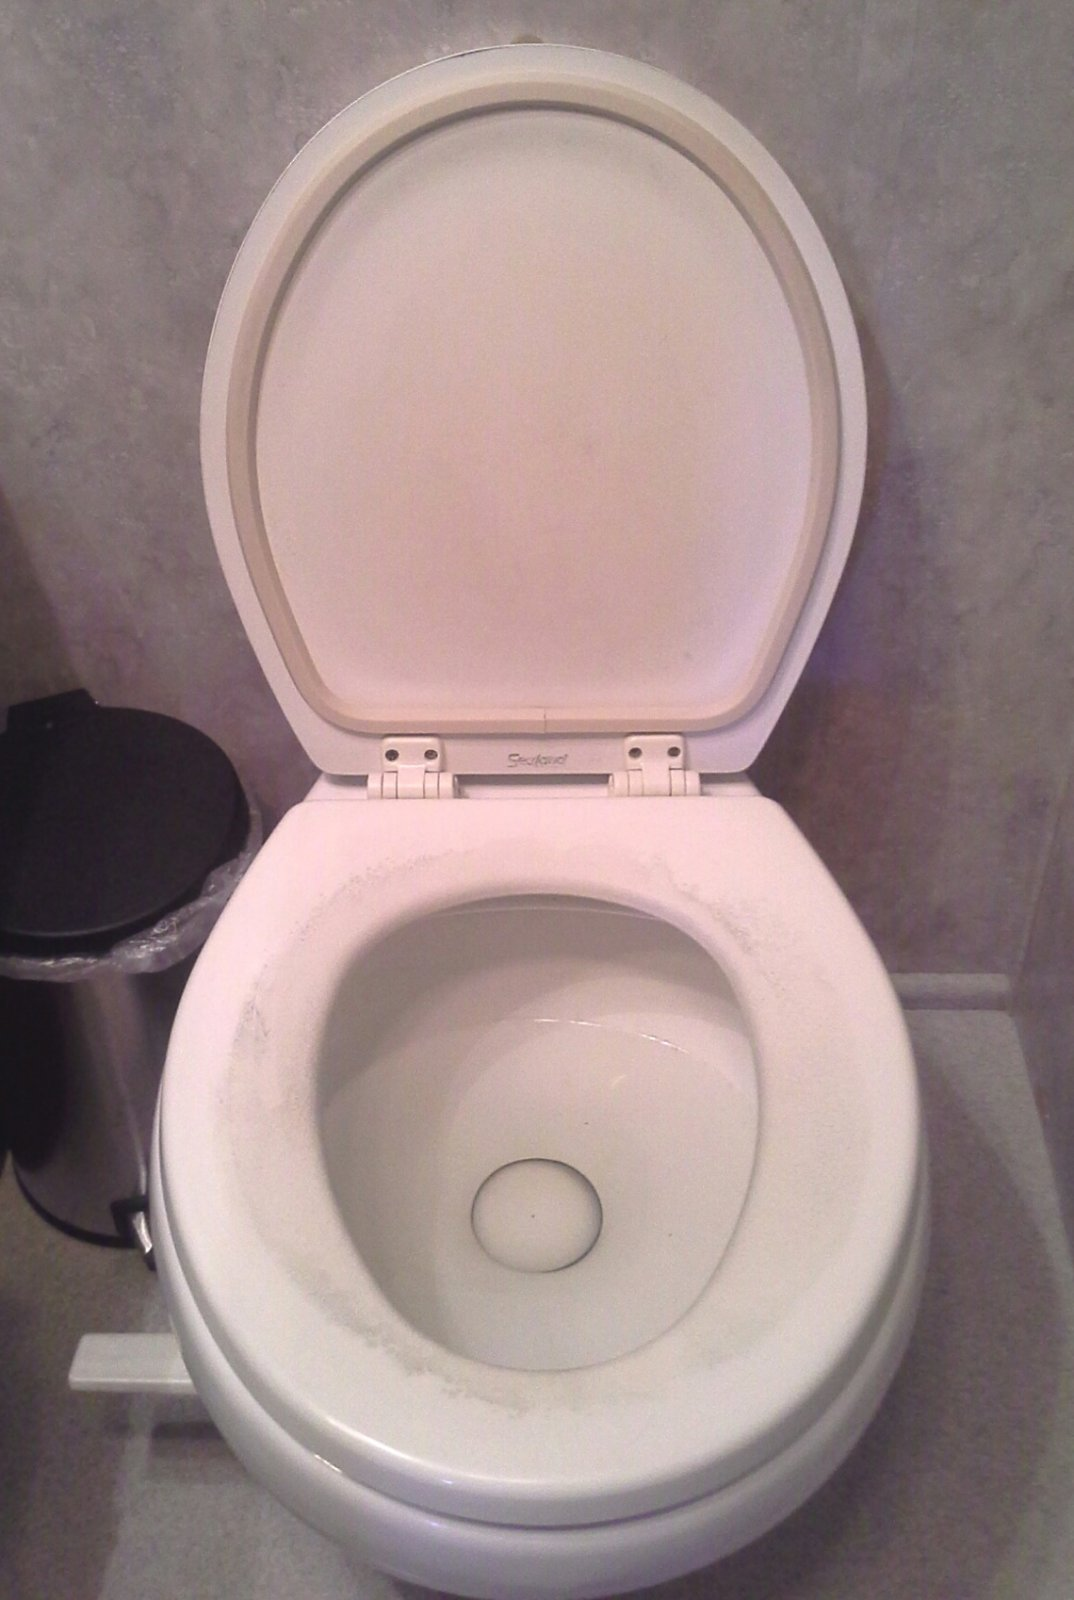 Click image for larger version  Name:Toilet Seat discoloration.jpg Views:301 Size:173.9 KB ID:75766